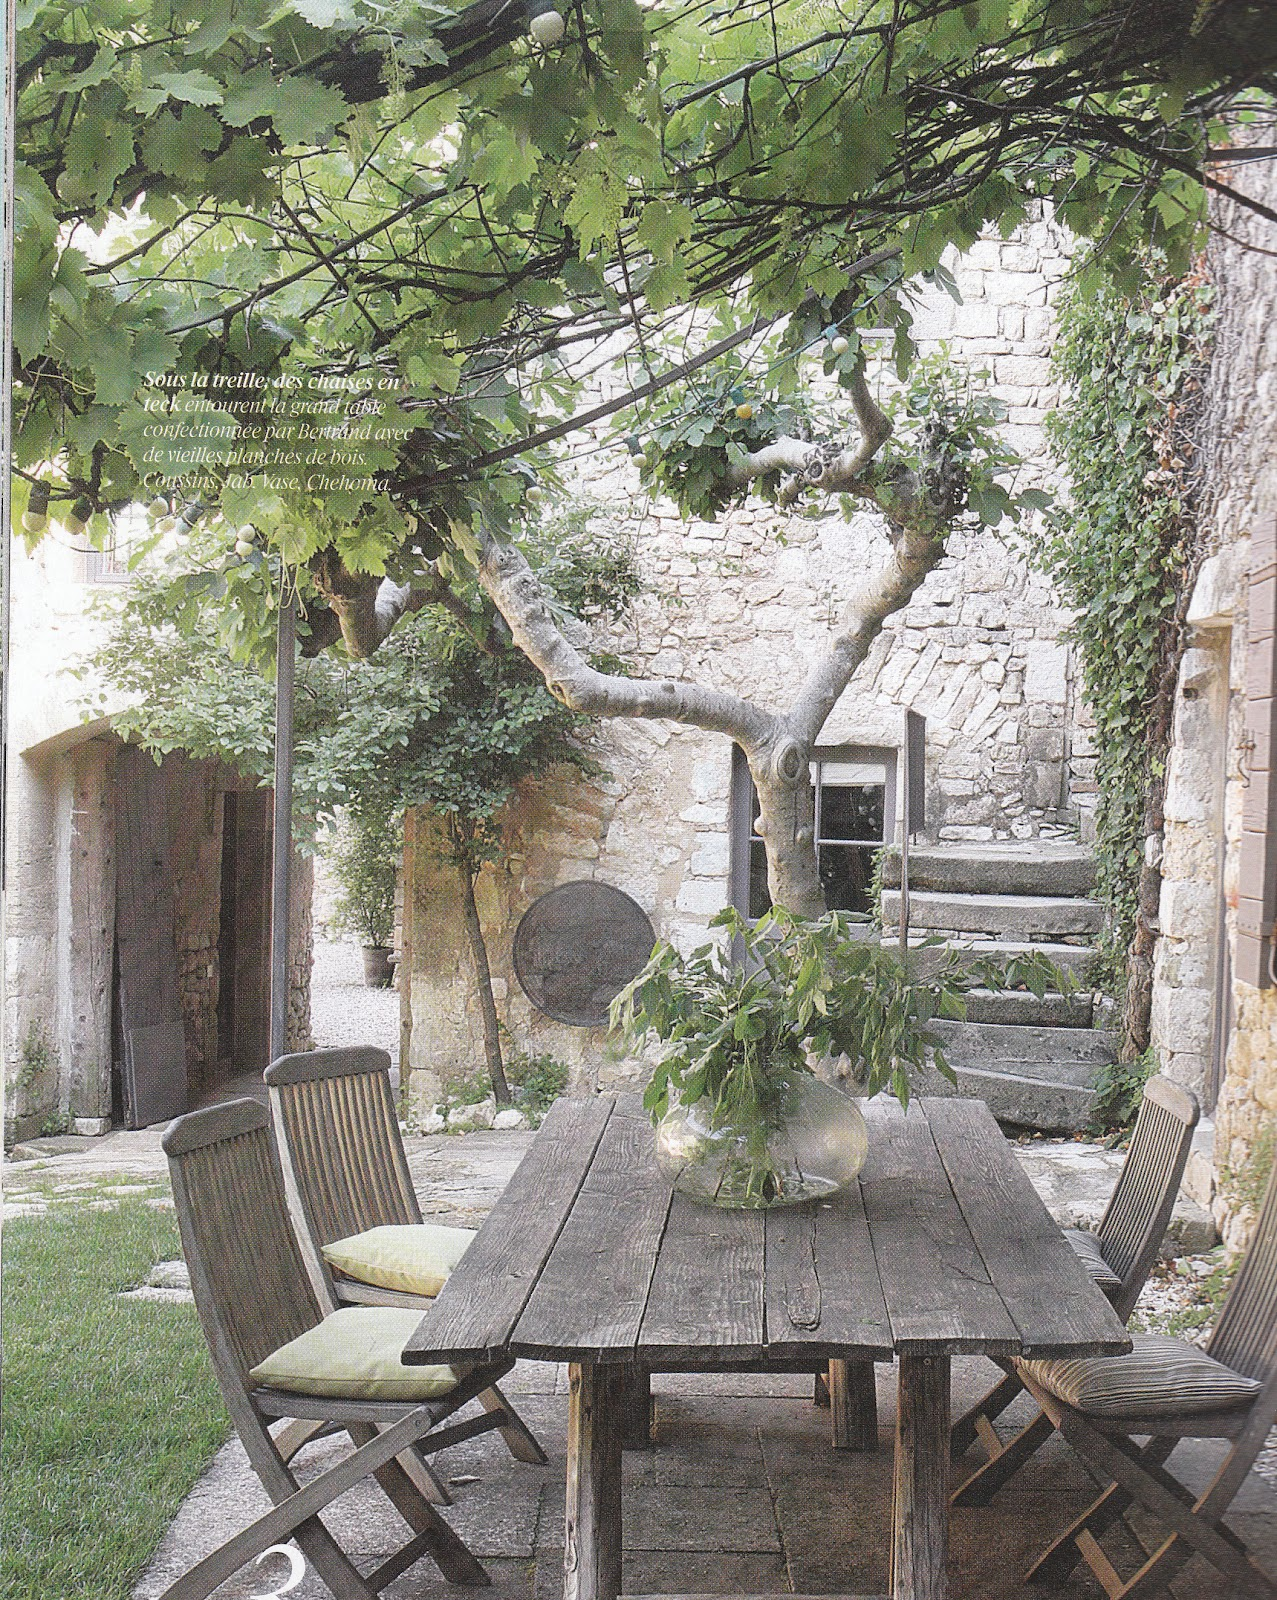 Isabelle h d coration et home staging juin 2012 for Jardin maison de campagne